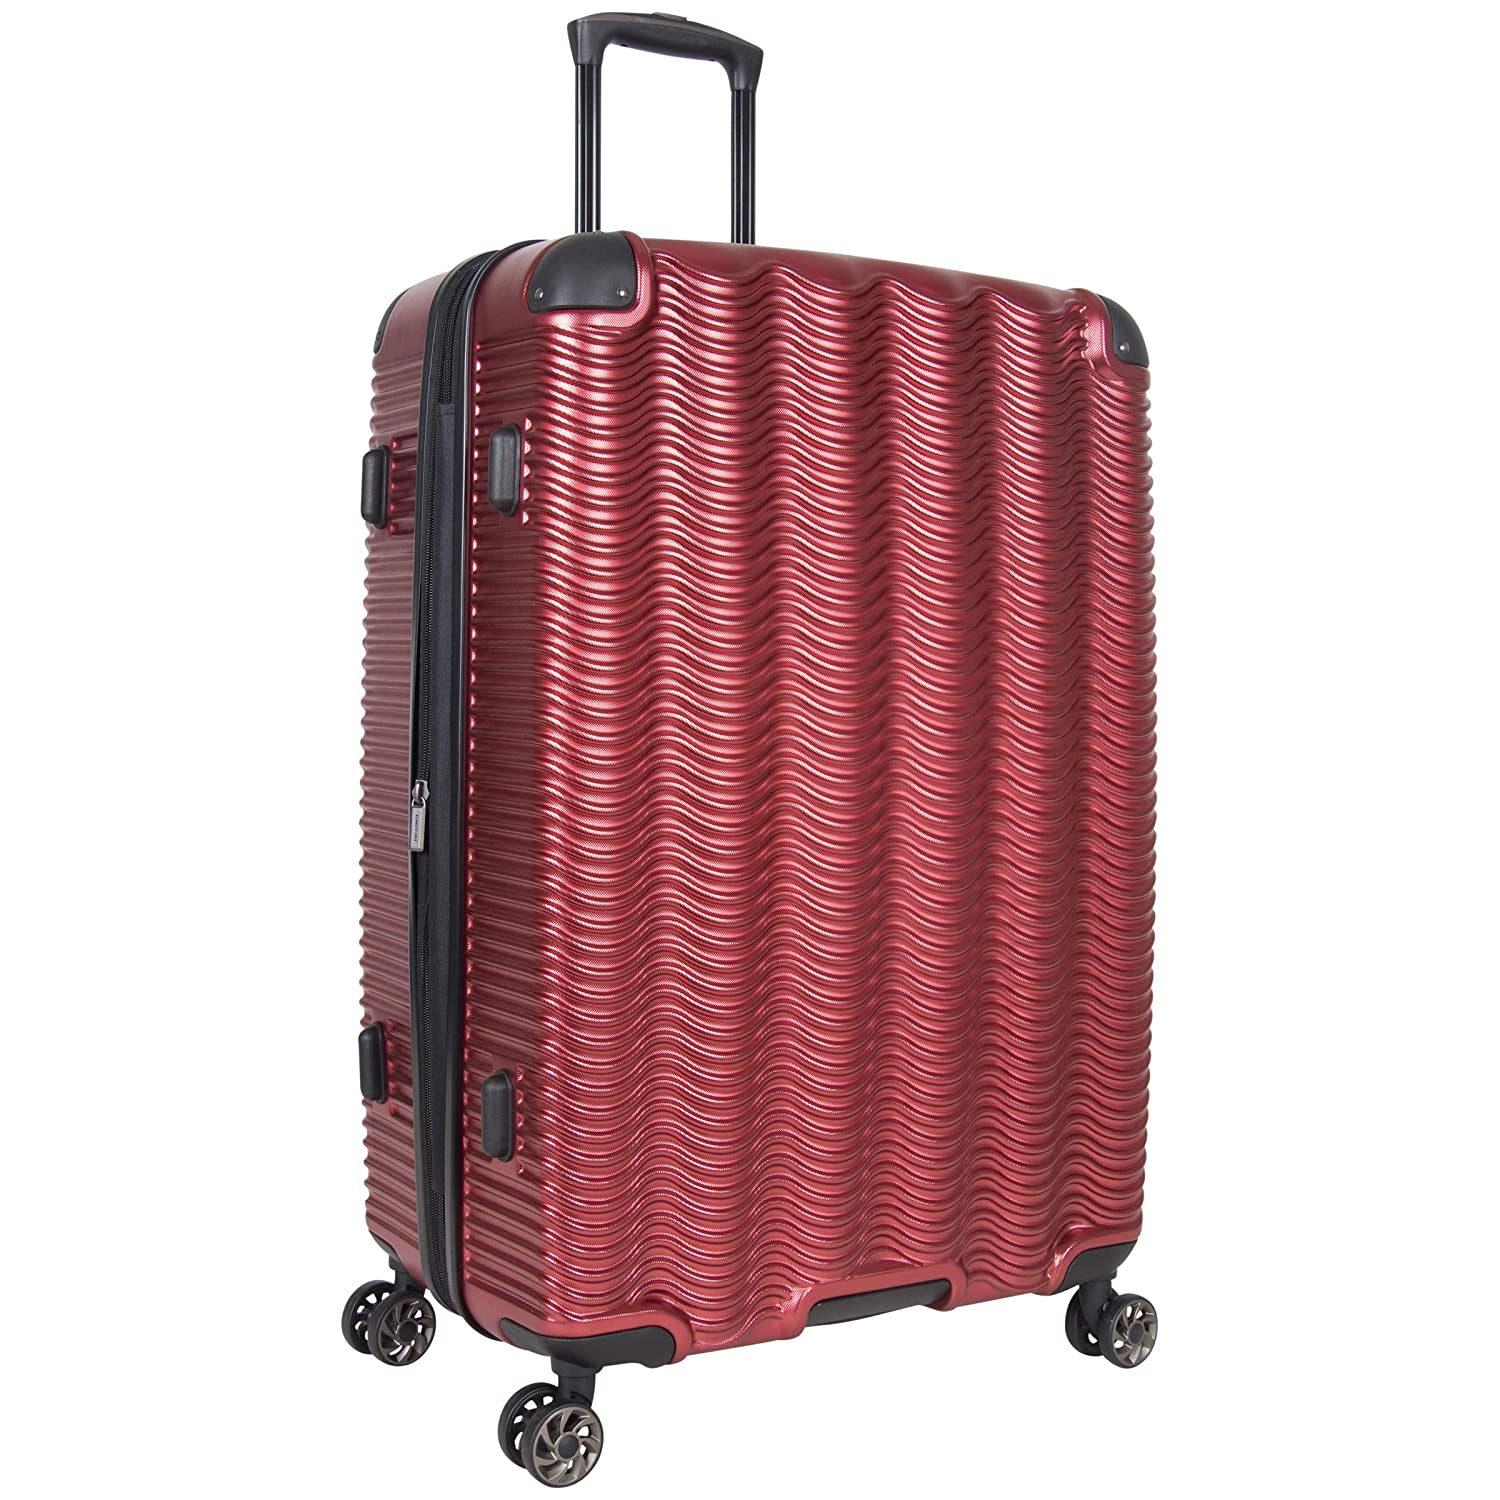 Kenneth Cole Reaction Wave Rush 20 Lightweight Hardside 8-Wheel Spinner Expandable Carry-On Suitcase Metallic Charcoal